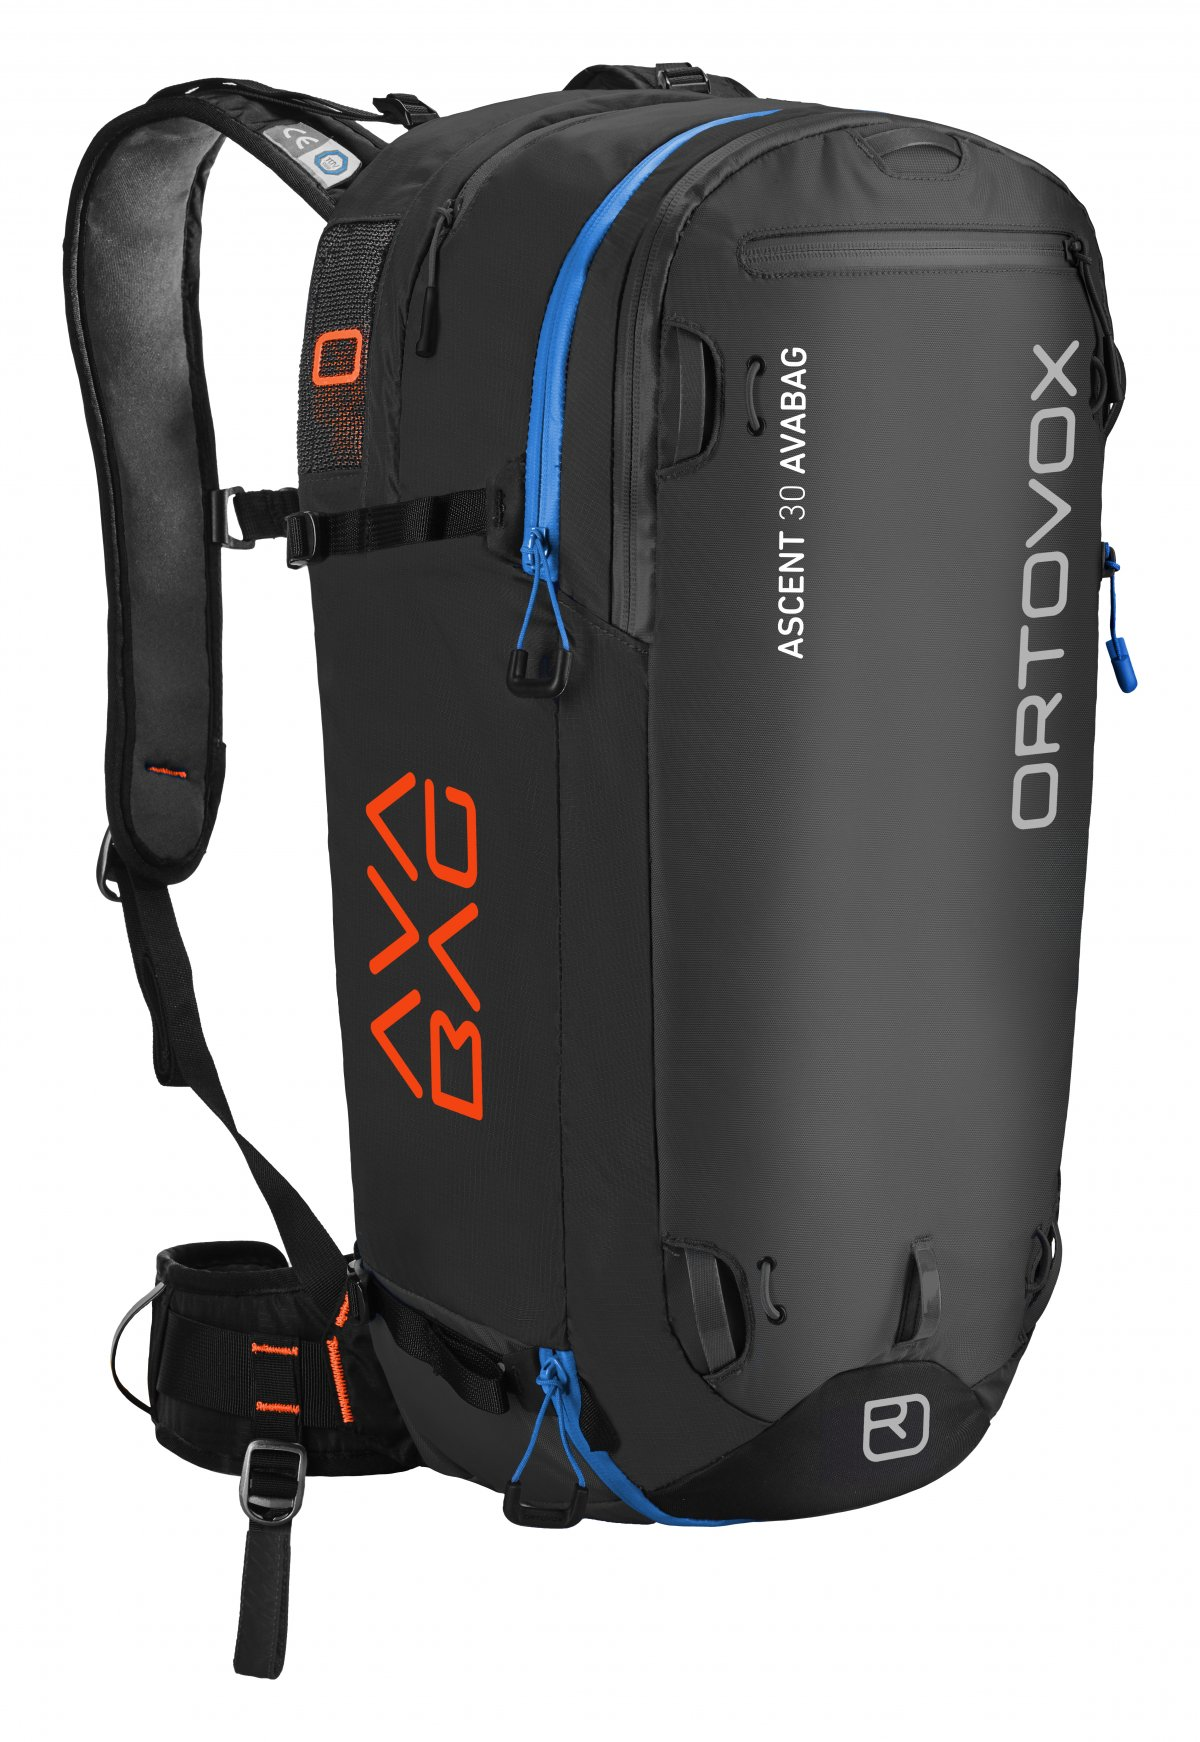 Front View - Black Anthracite - Ortovox Ascent 30 Avabag Backpack